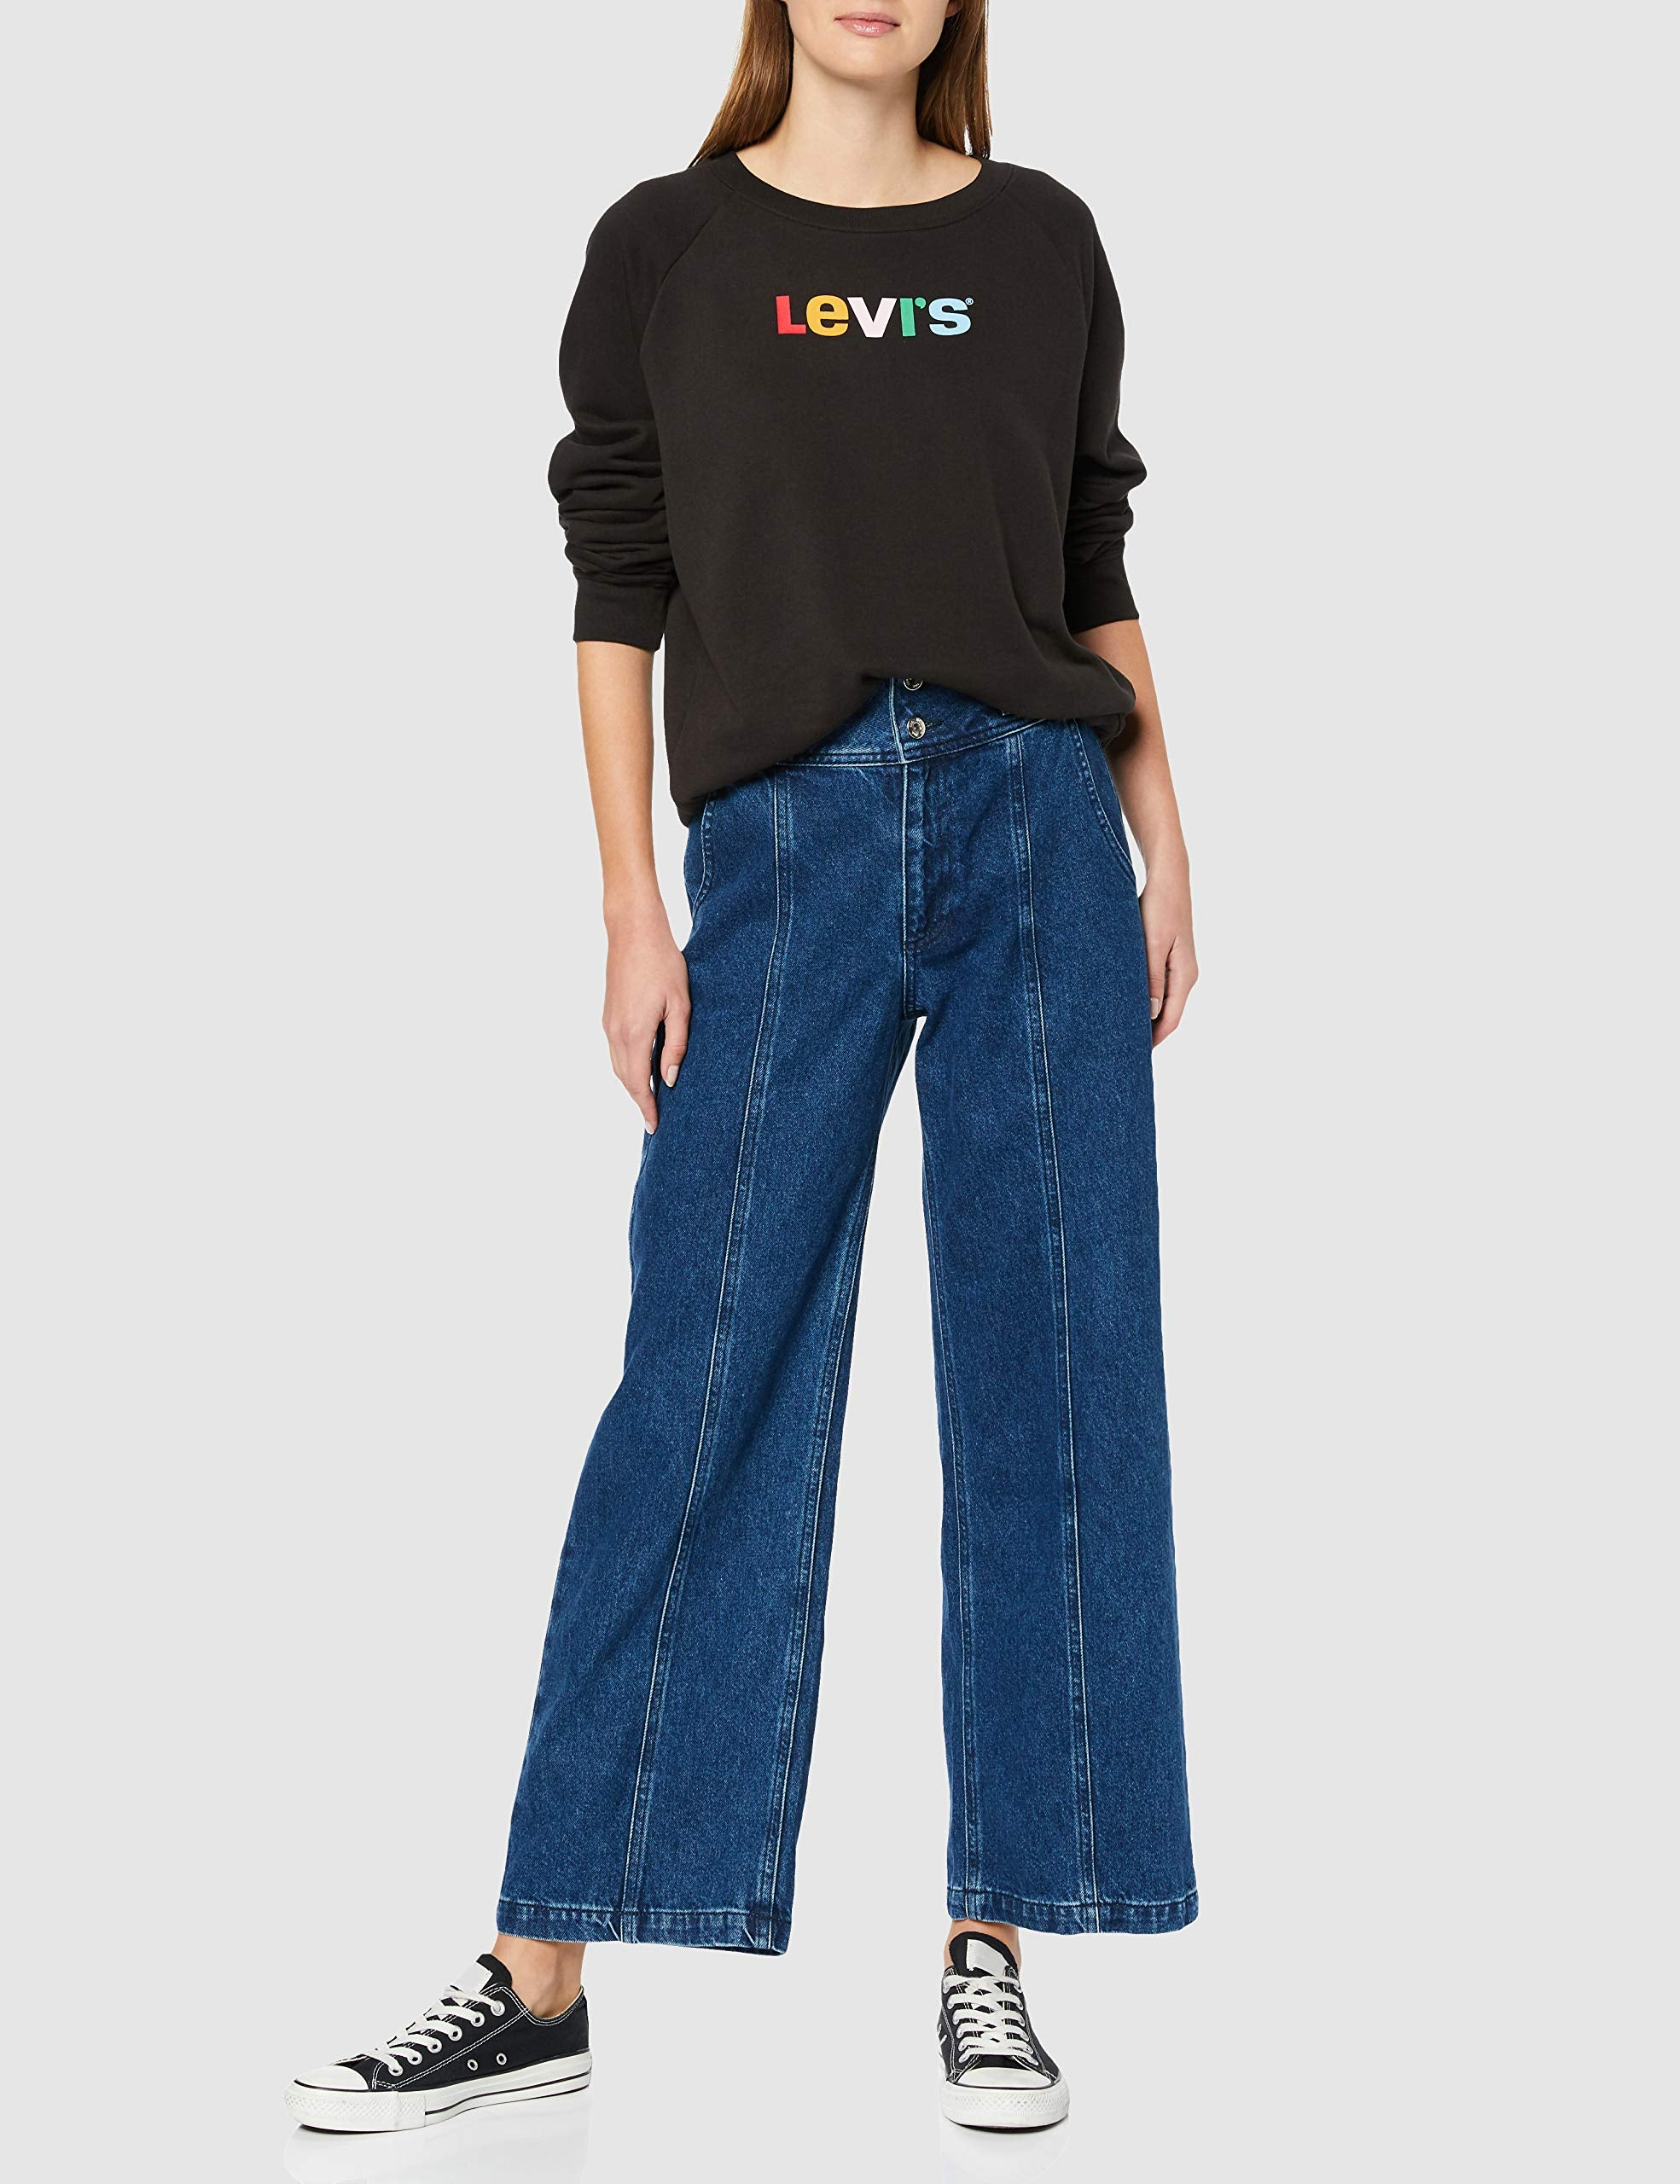 Levi's Relaxed Graphic Felpa, Nero Text Crew Meteorite 0033, Medium Donna Marche Famose